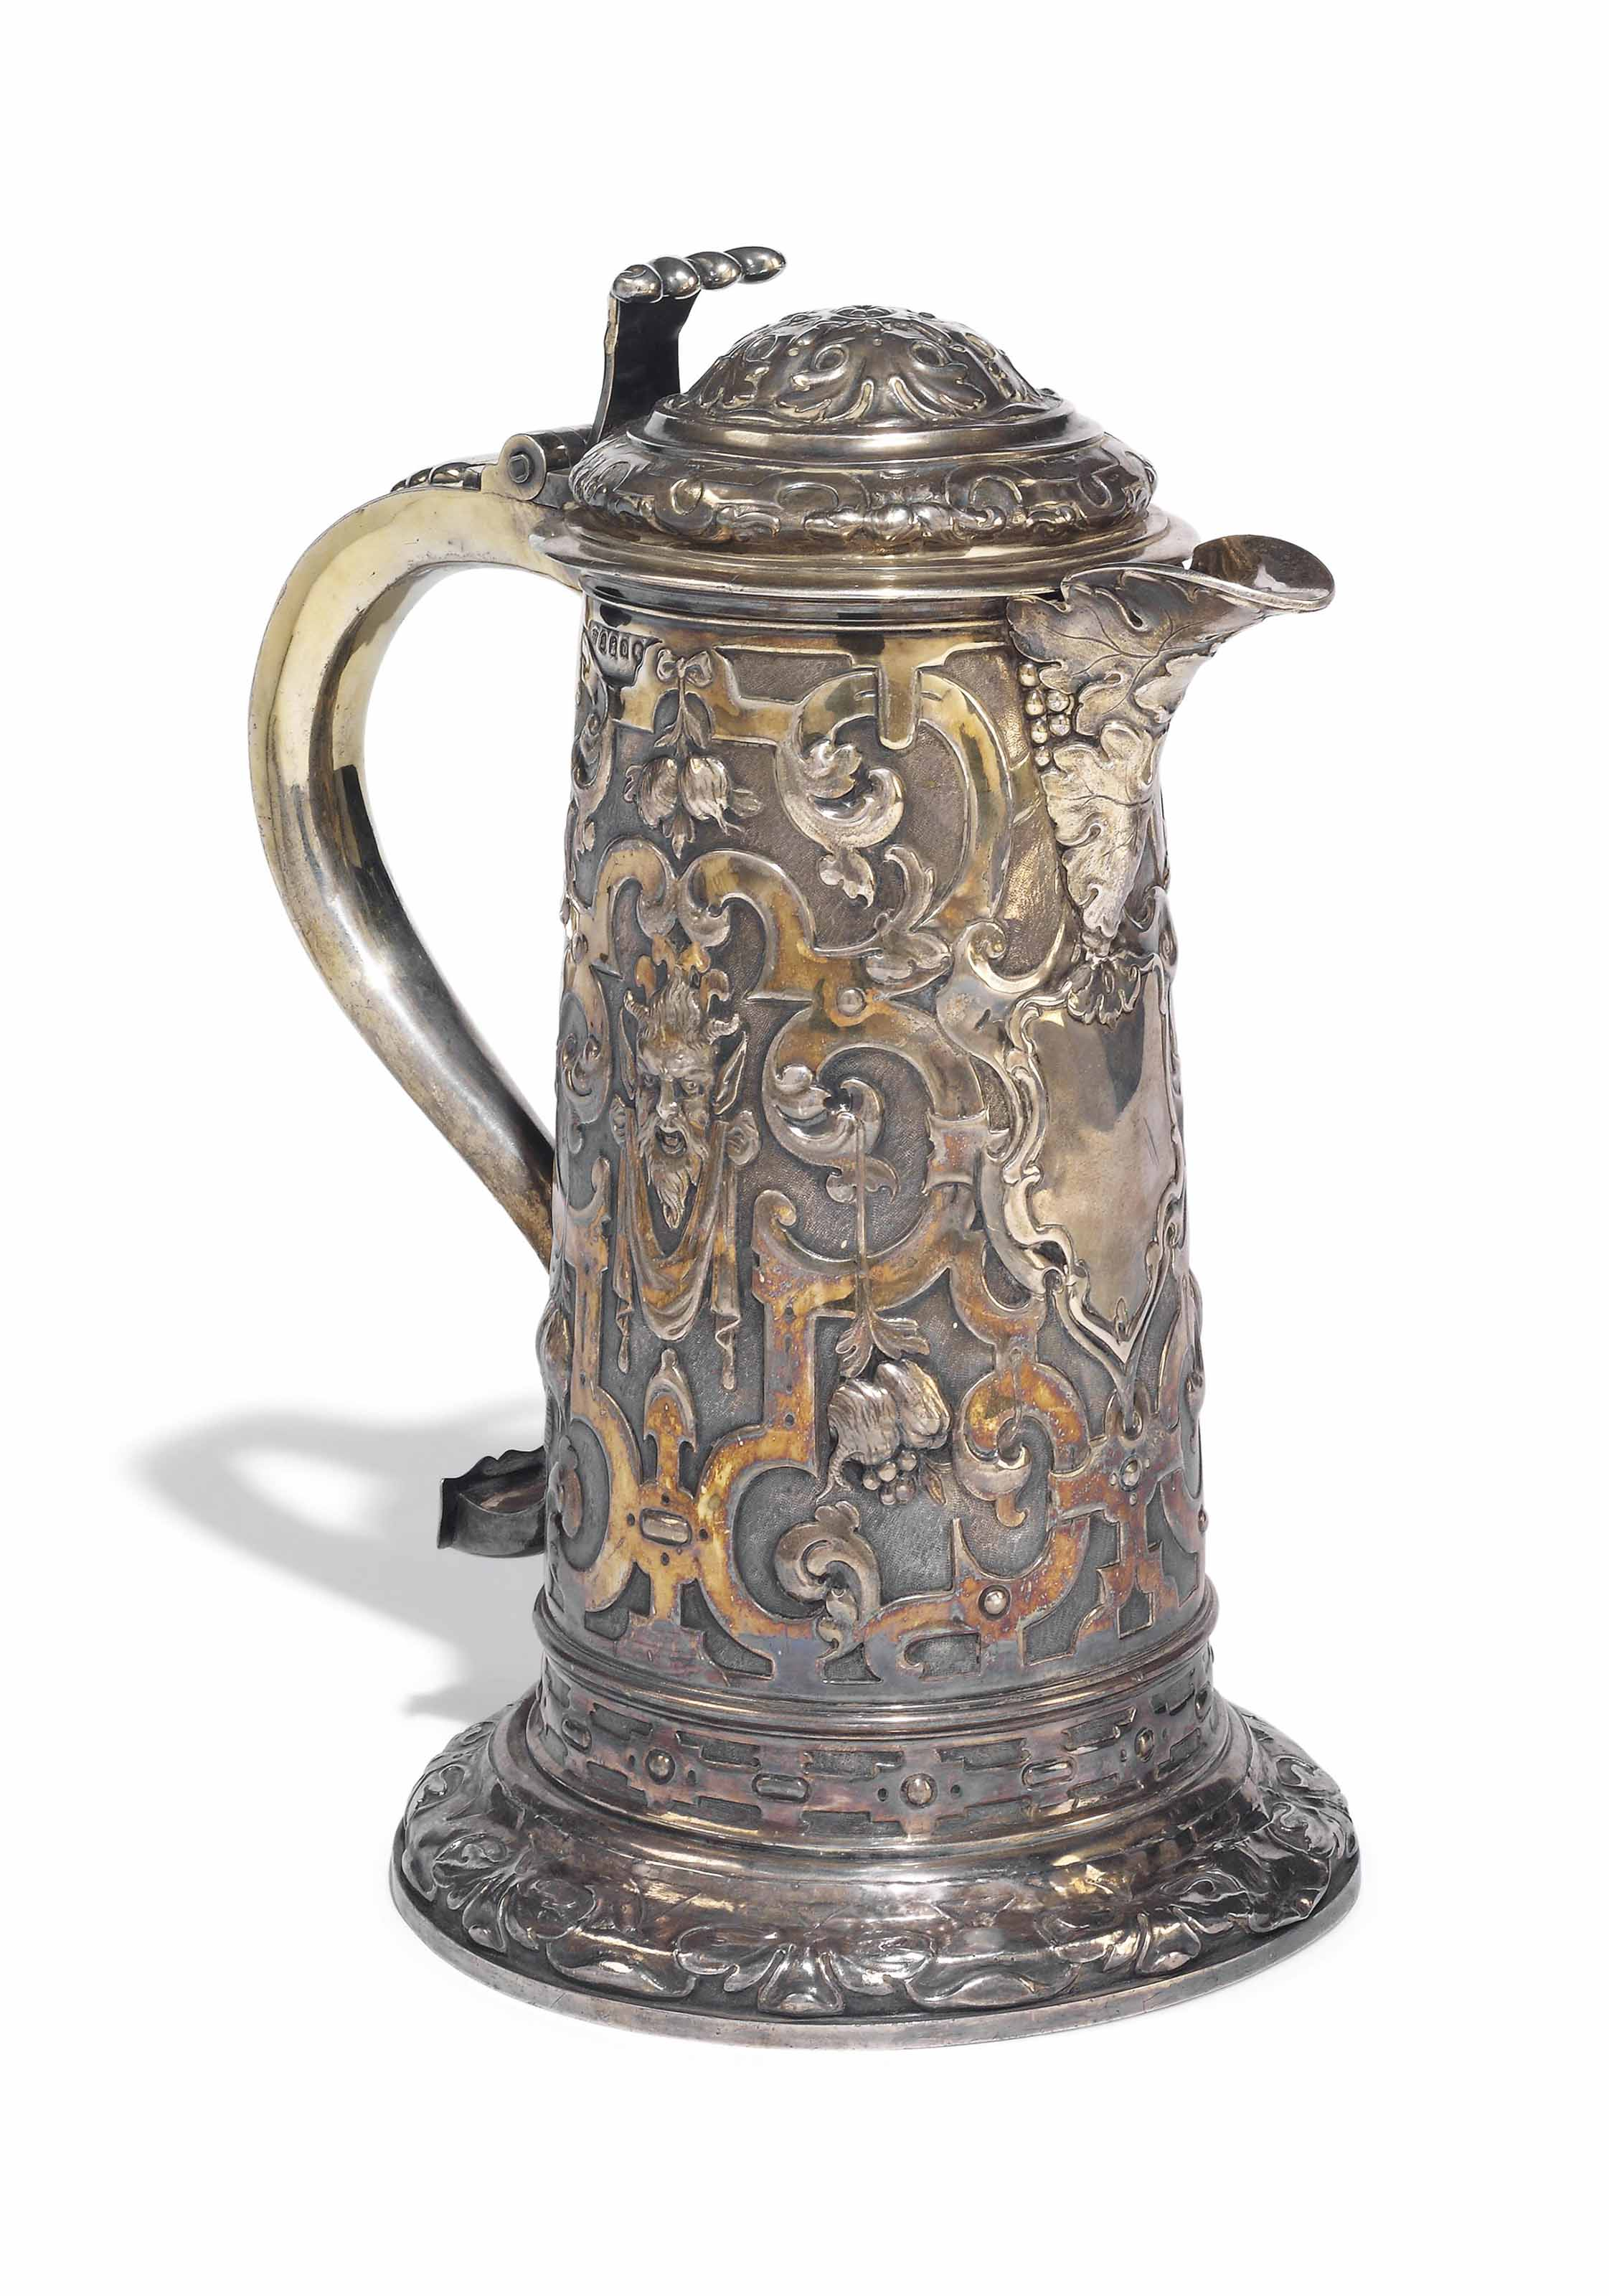 A MASSIVE VICTORIAN BRITANNIA STANDARD SILVER-GILT FLAGON IN THE RENAISSANCE MANNER